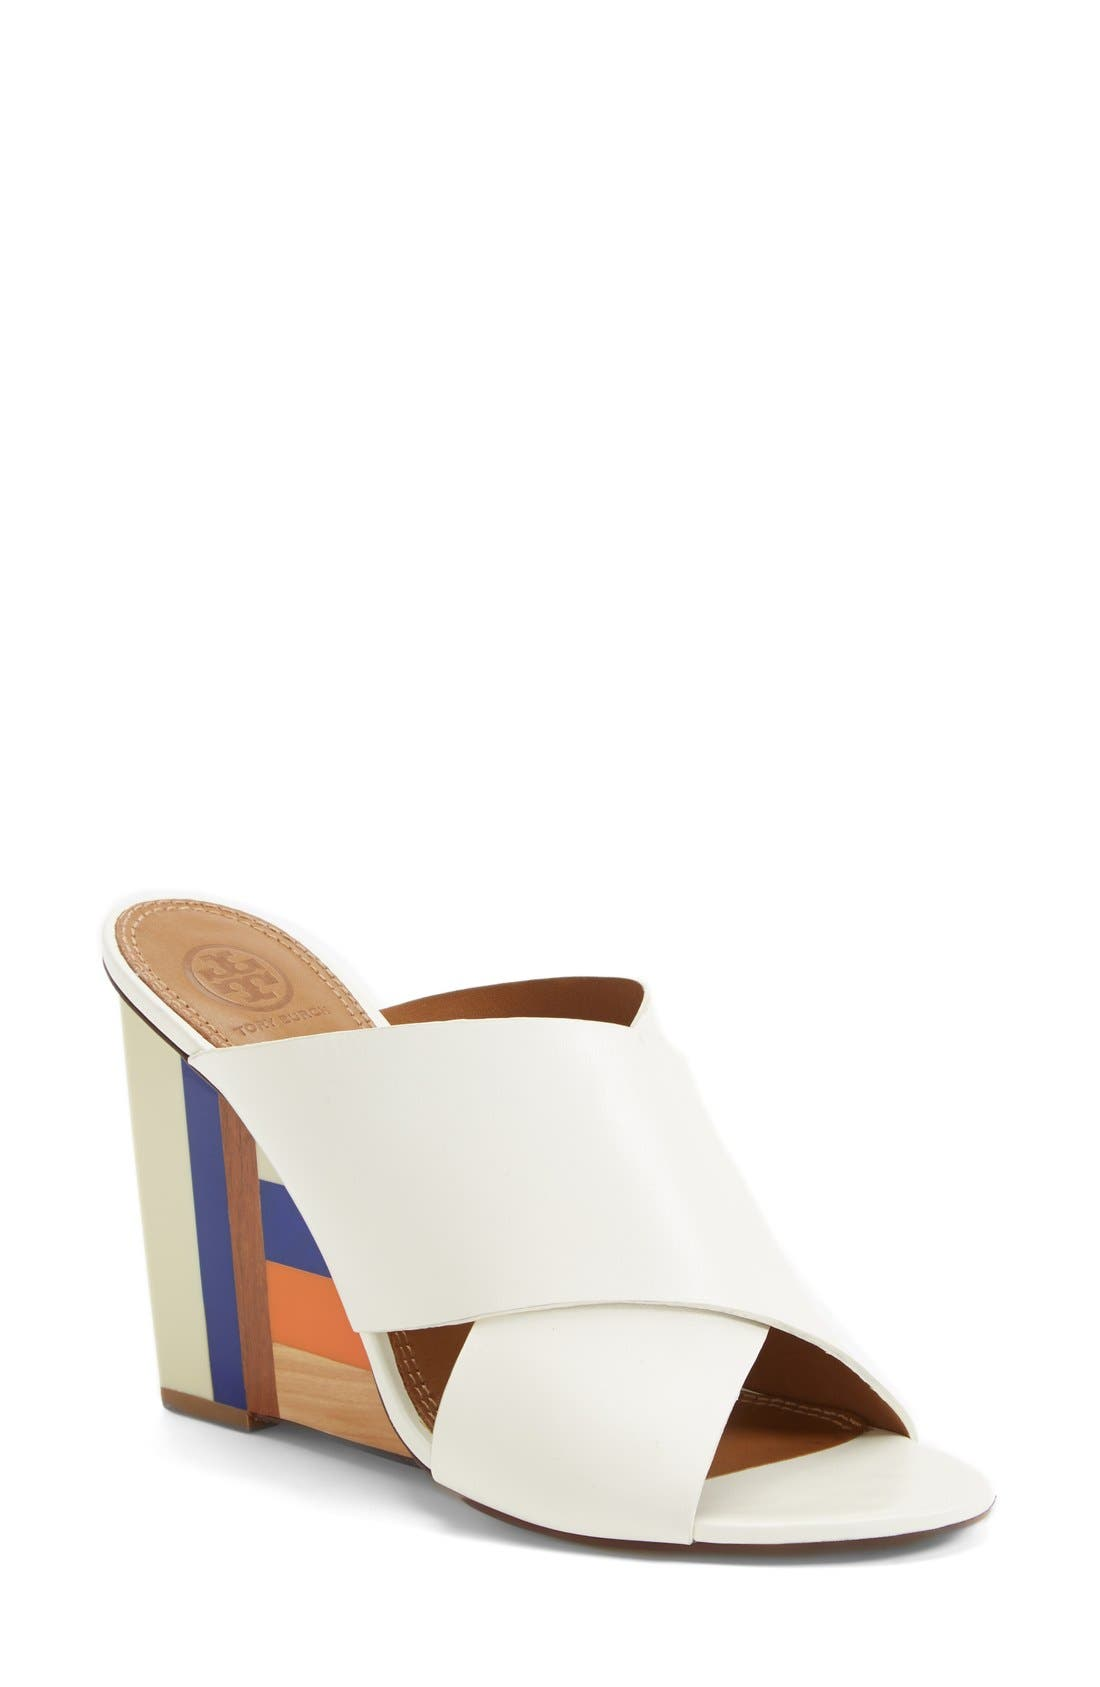 Main Image - Tory Burch 'Cube' Leather Crossover Strap Wedge Sandal (Women)